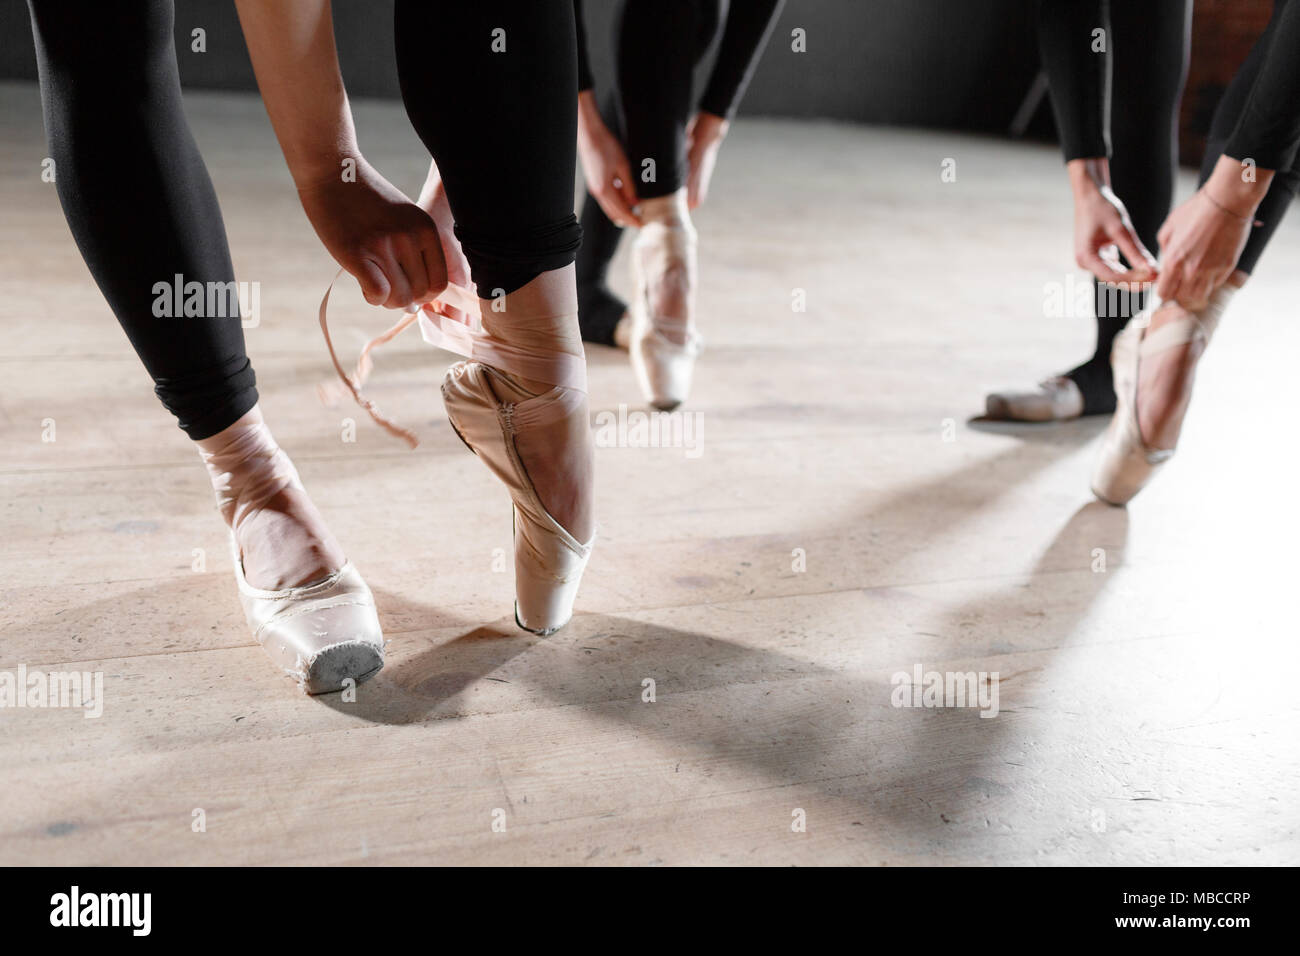 The ballet concept. Pointe shoes close up. Young ballerina girls. Women at the rehearsal in black bodysuits. Prepare a theatrical performance - Stock Image